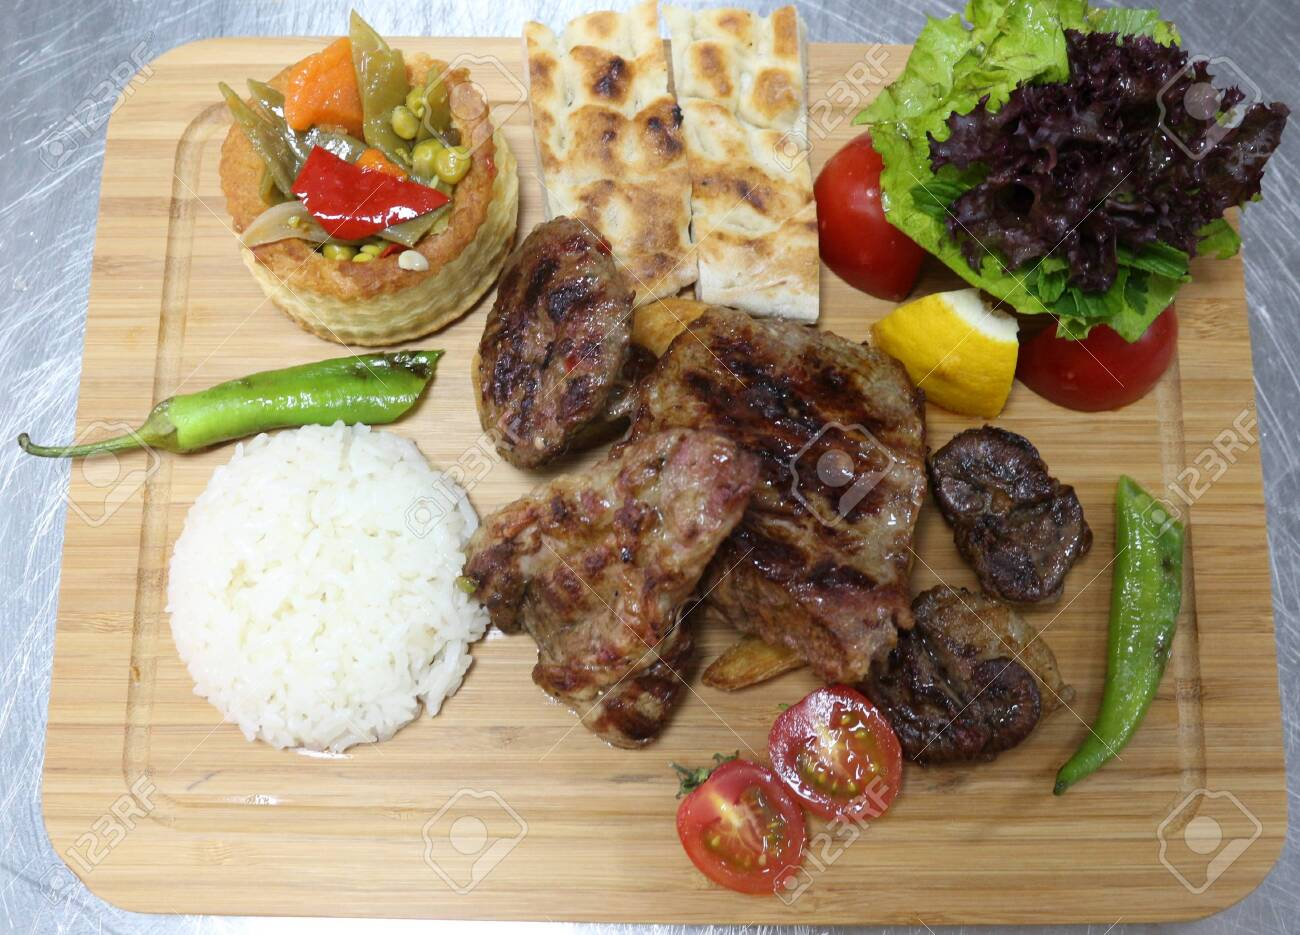 Portion of Delicious Grilled Meat With Rice and Vegetables - 146047784